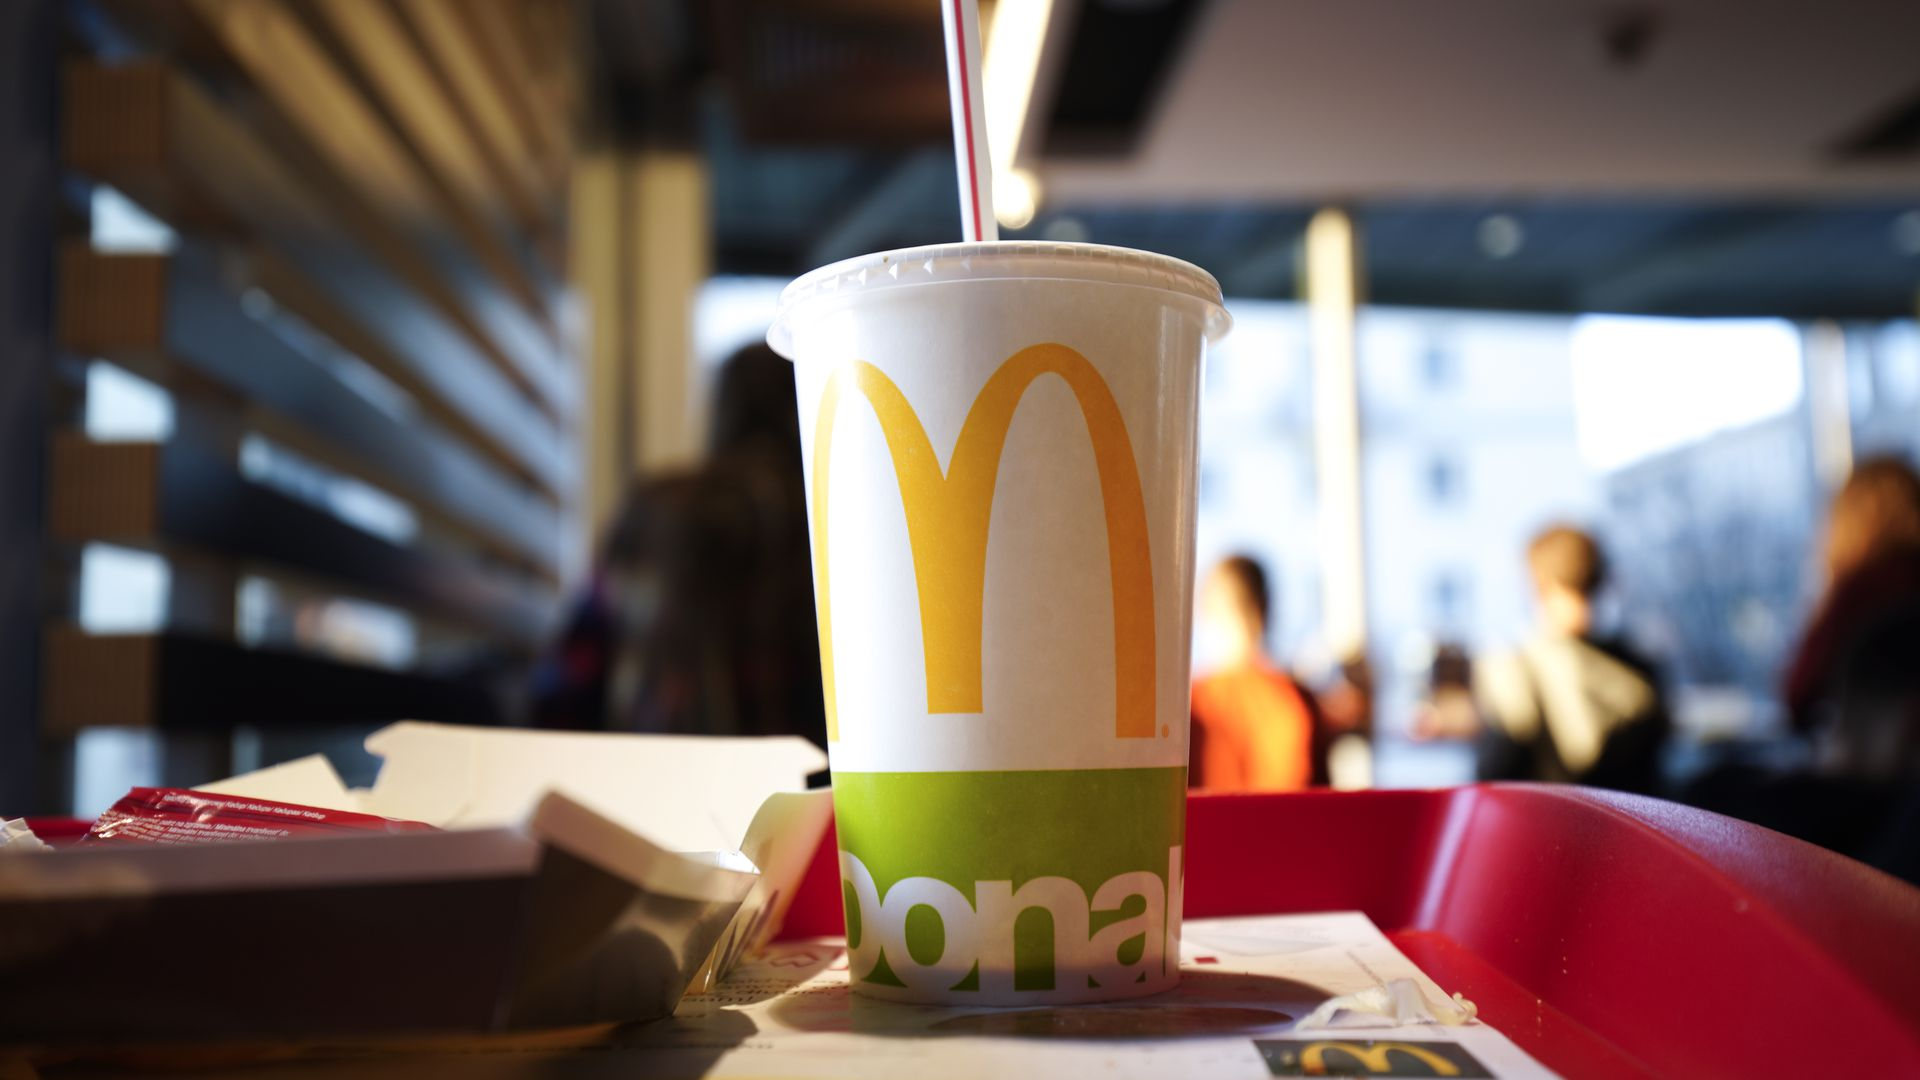 McDonald's latest acquisition shows how the fast food industry has made technology a priority